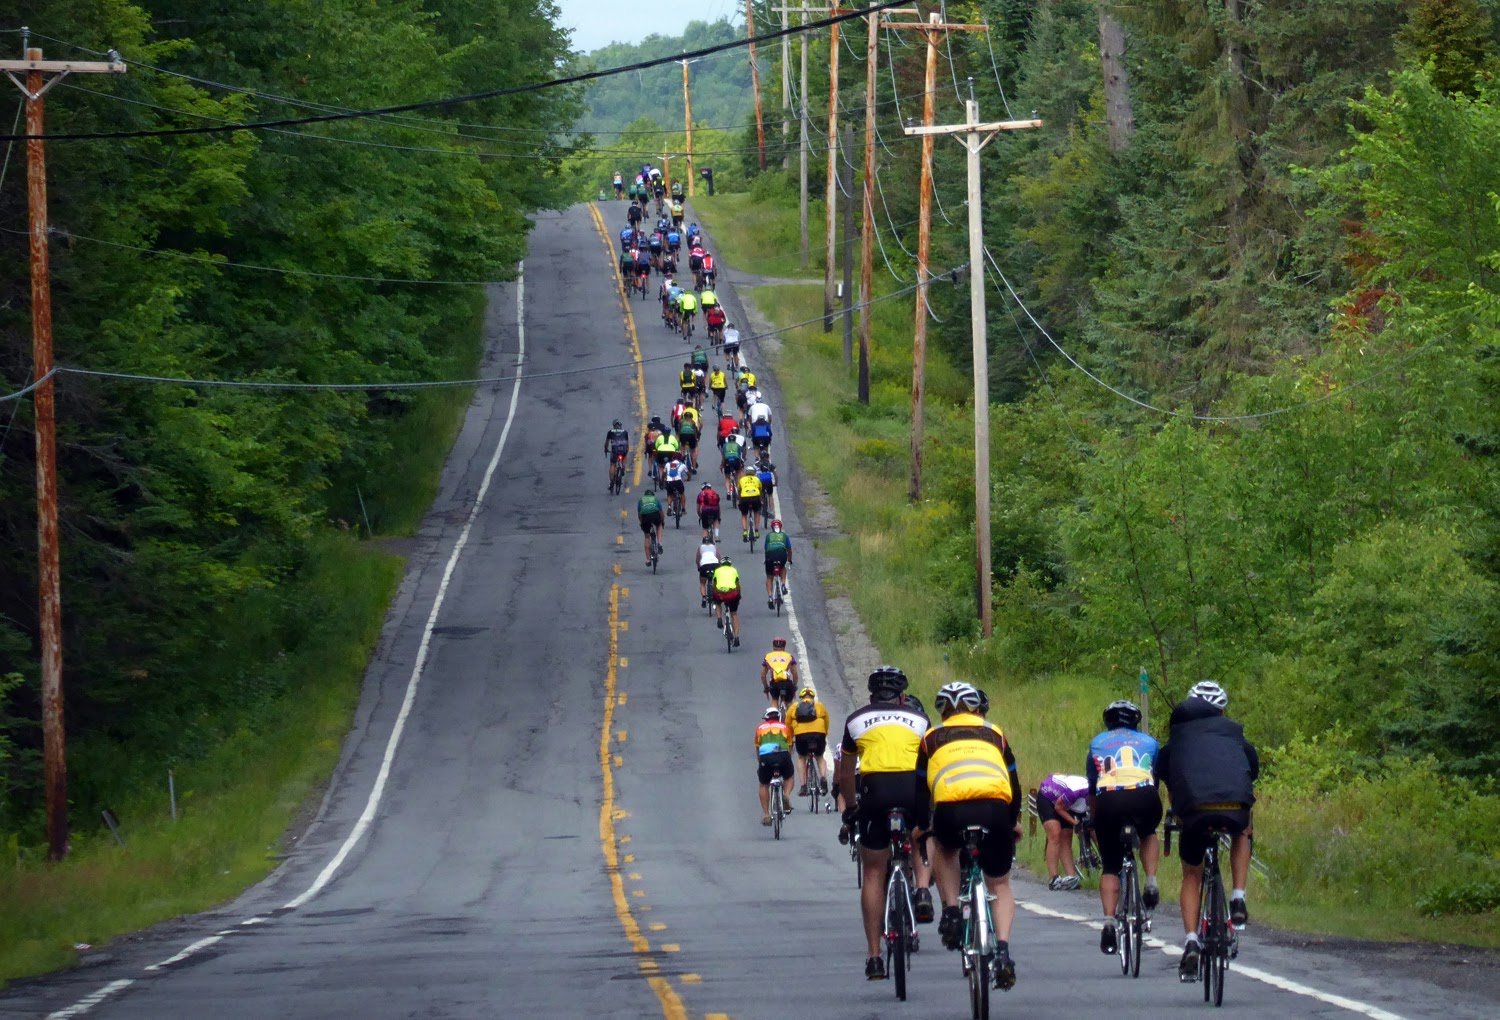 The pack gets stretched out as riders head south on Route 8 south of Sodom.   Copyright by Dave Kraus/ Krausgrafik.com